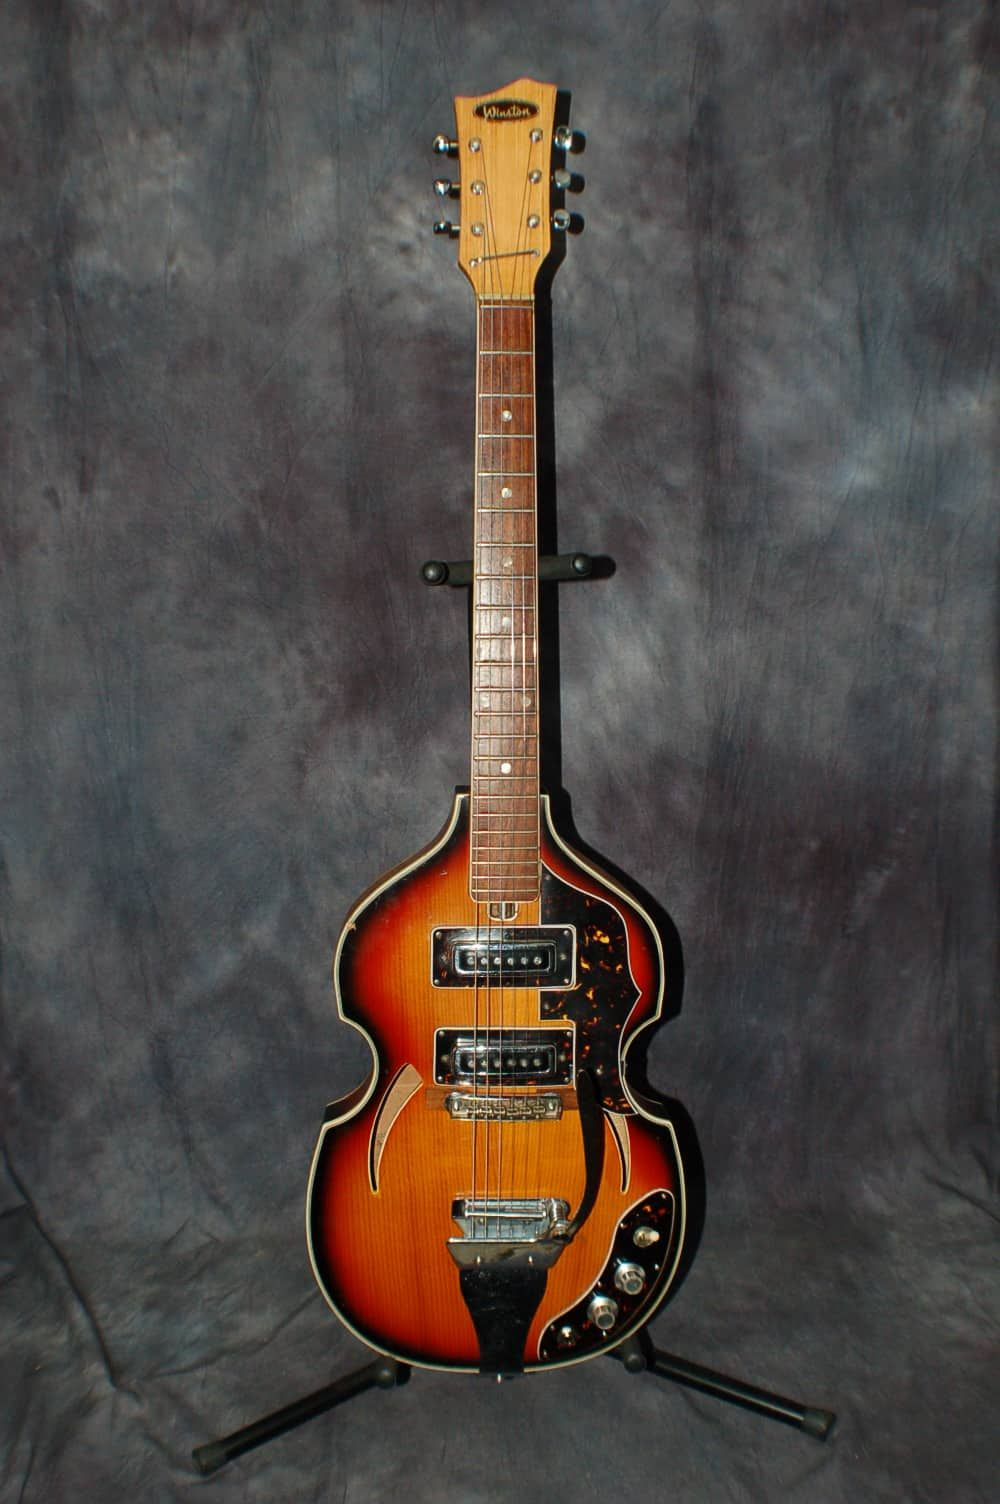 medium resolution of a really cool 1960 s winston by teisco vox violin style guitar with whammy tailpiece this guitar is awesome all original and it plays and sounds great